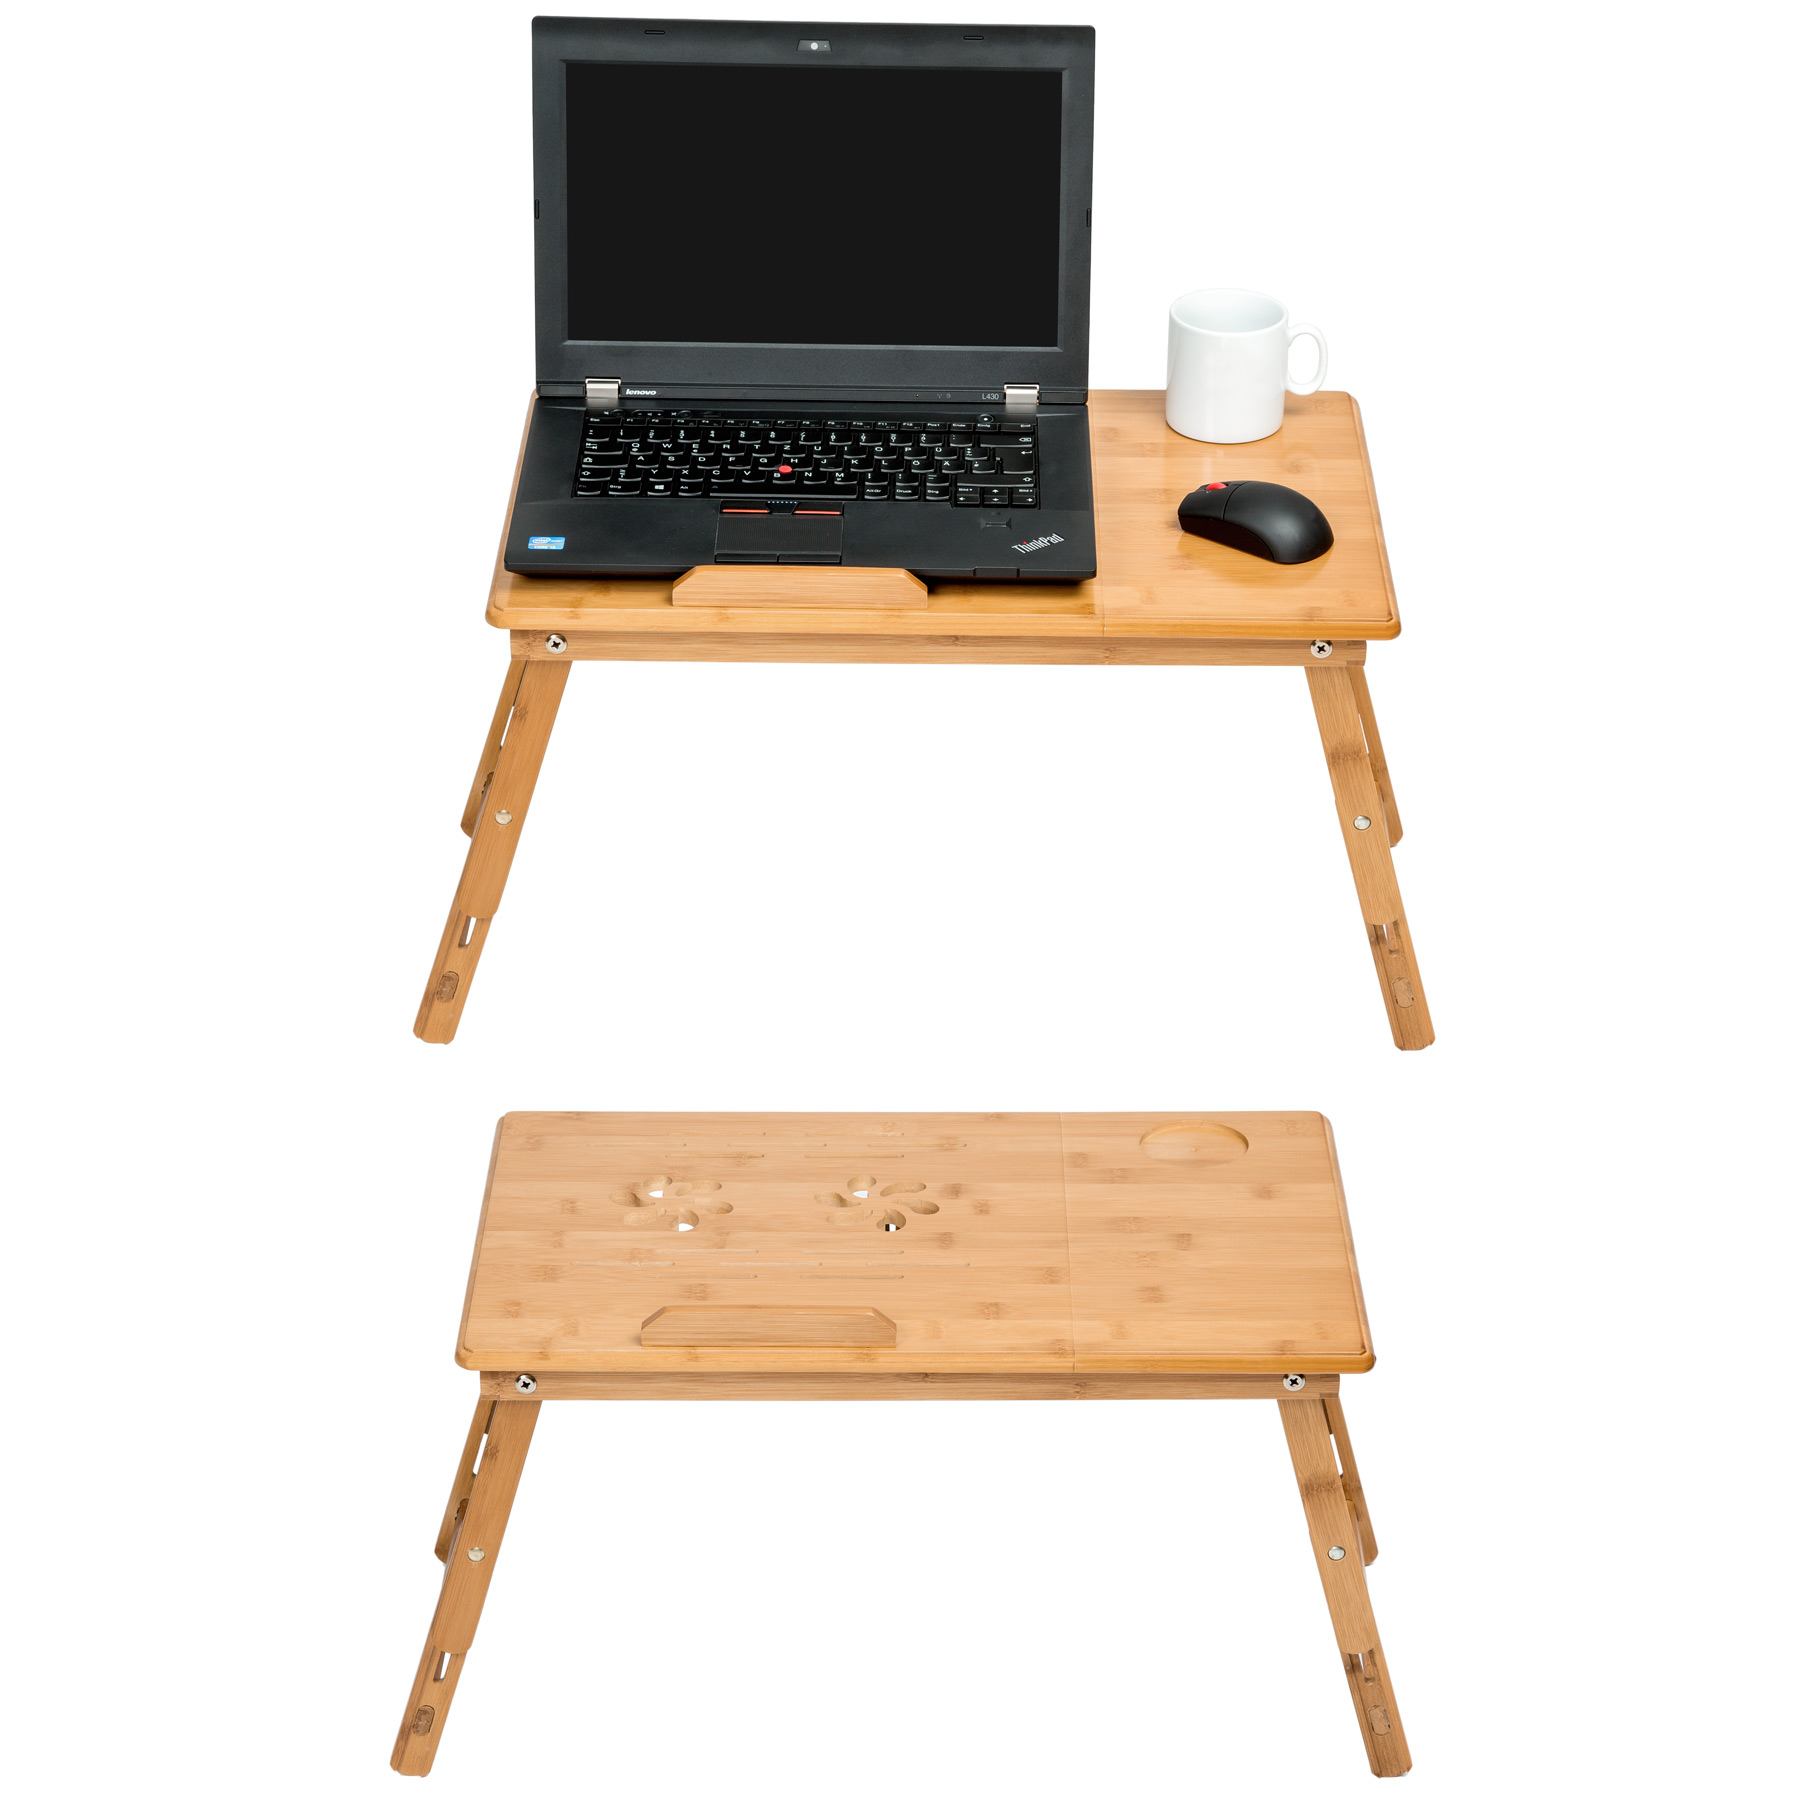 table de lit pliable pour pc portable notebook ipad tablet en bambou avec tiroir ebay. Black Bedroom Furniture Sets. Home Design Ideas